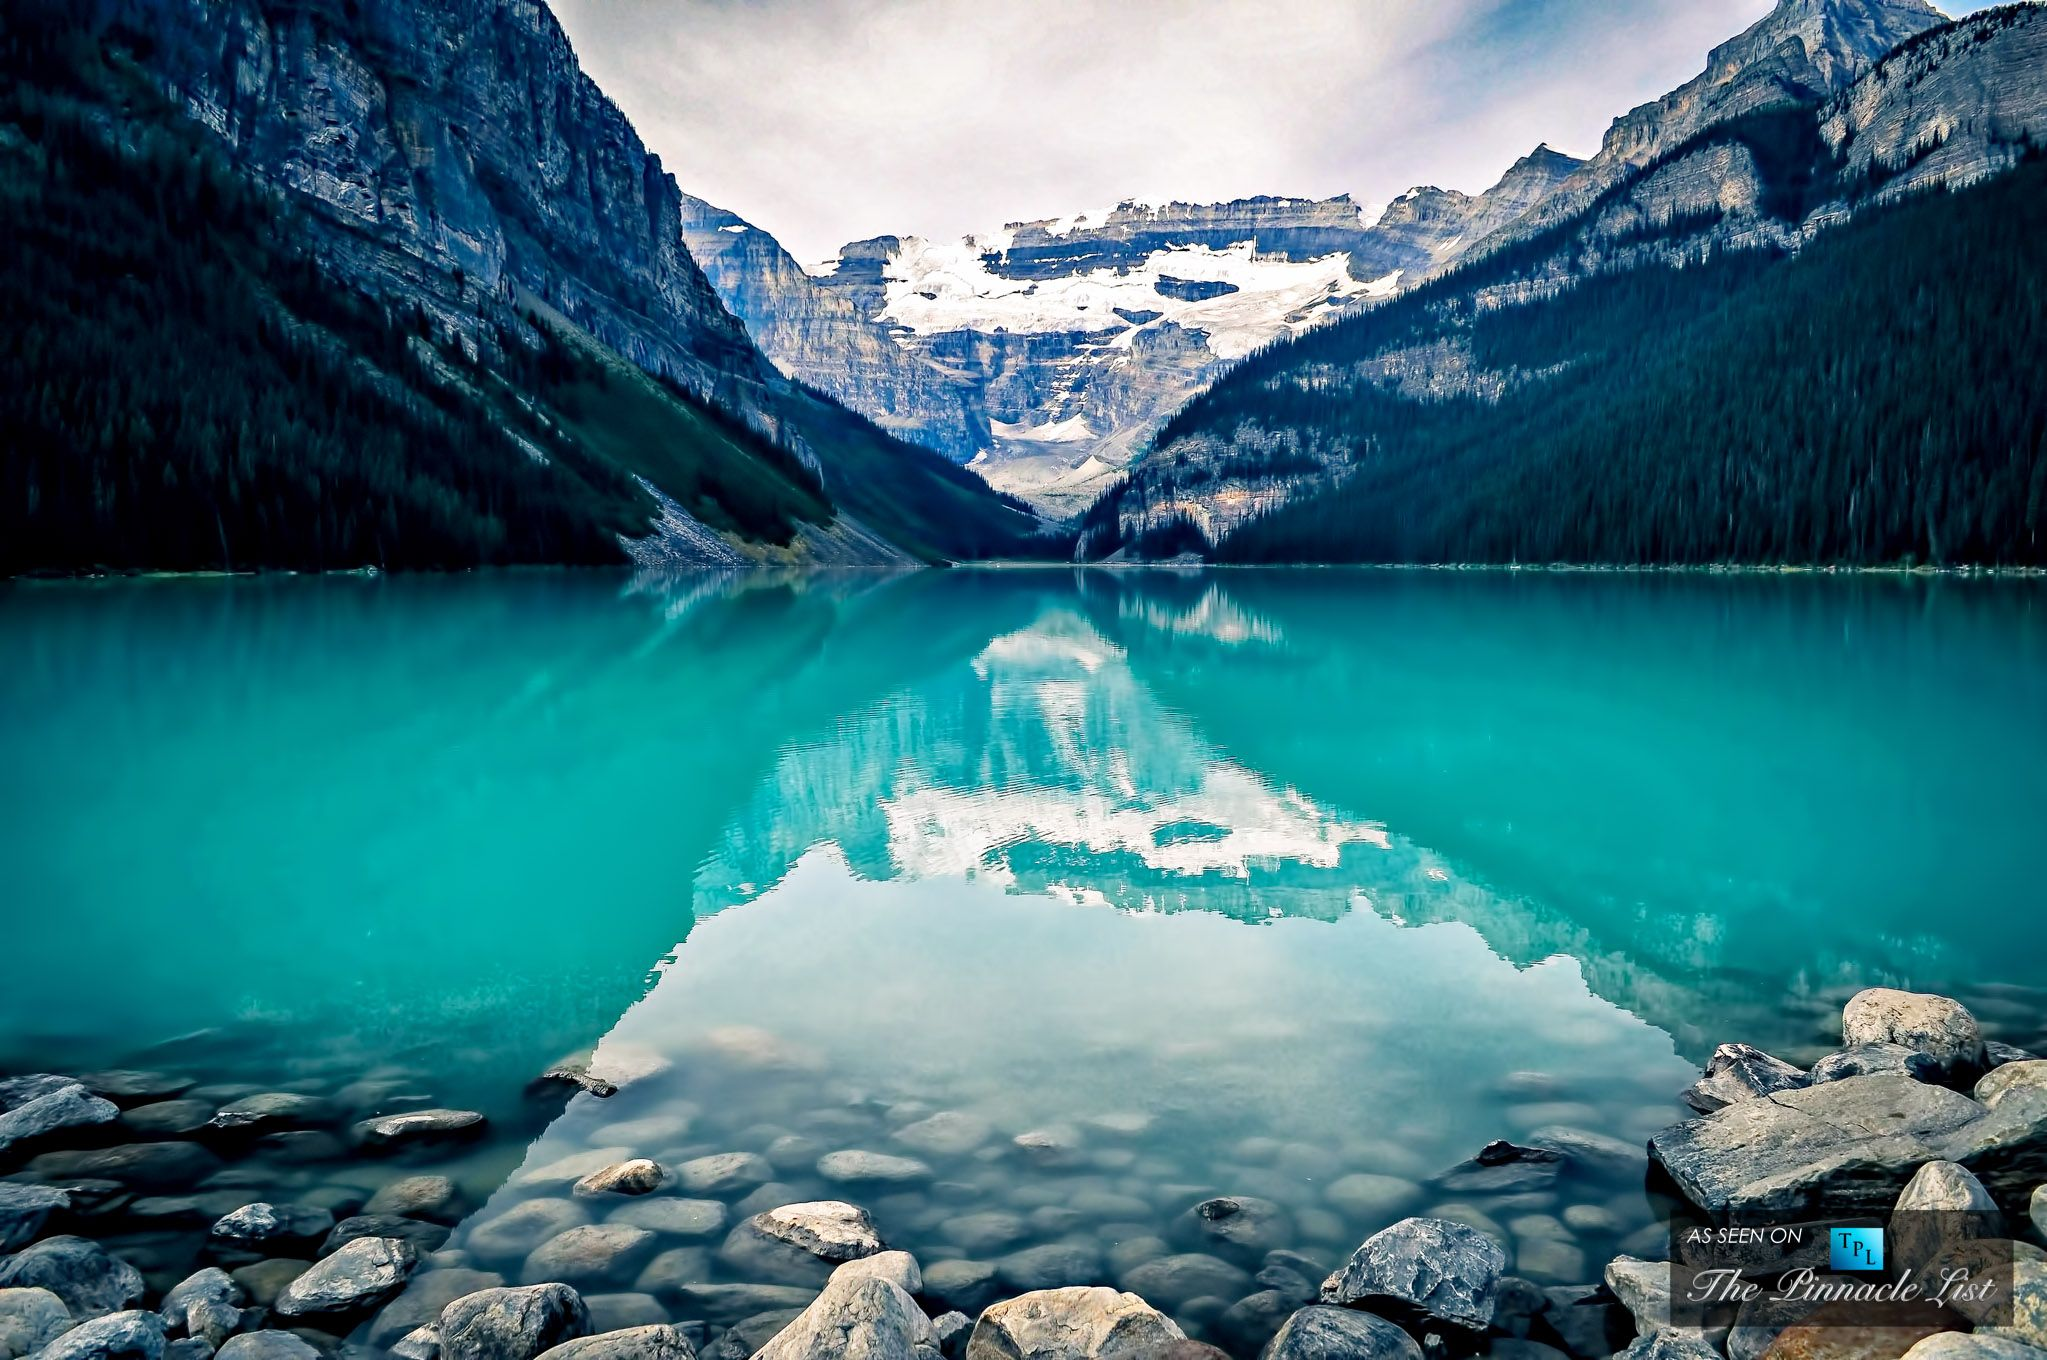 The Marvelous Crystal Blue Lake Louise At Banff National Park In Alberta Canada The Pinnacle List Ipad Air Wallpaper Landscape Wallpaper Nature Backgrounds